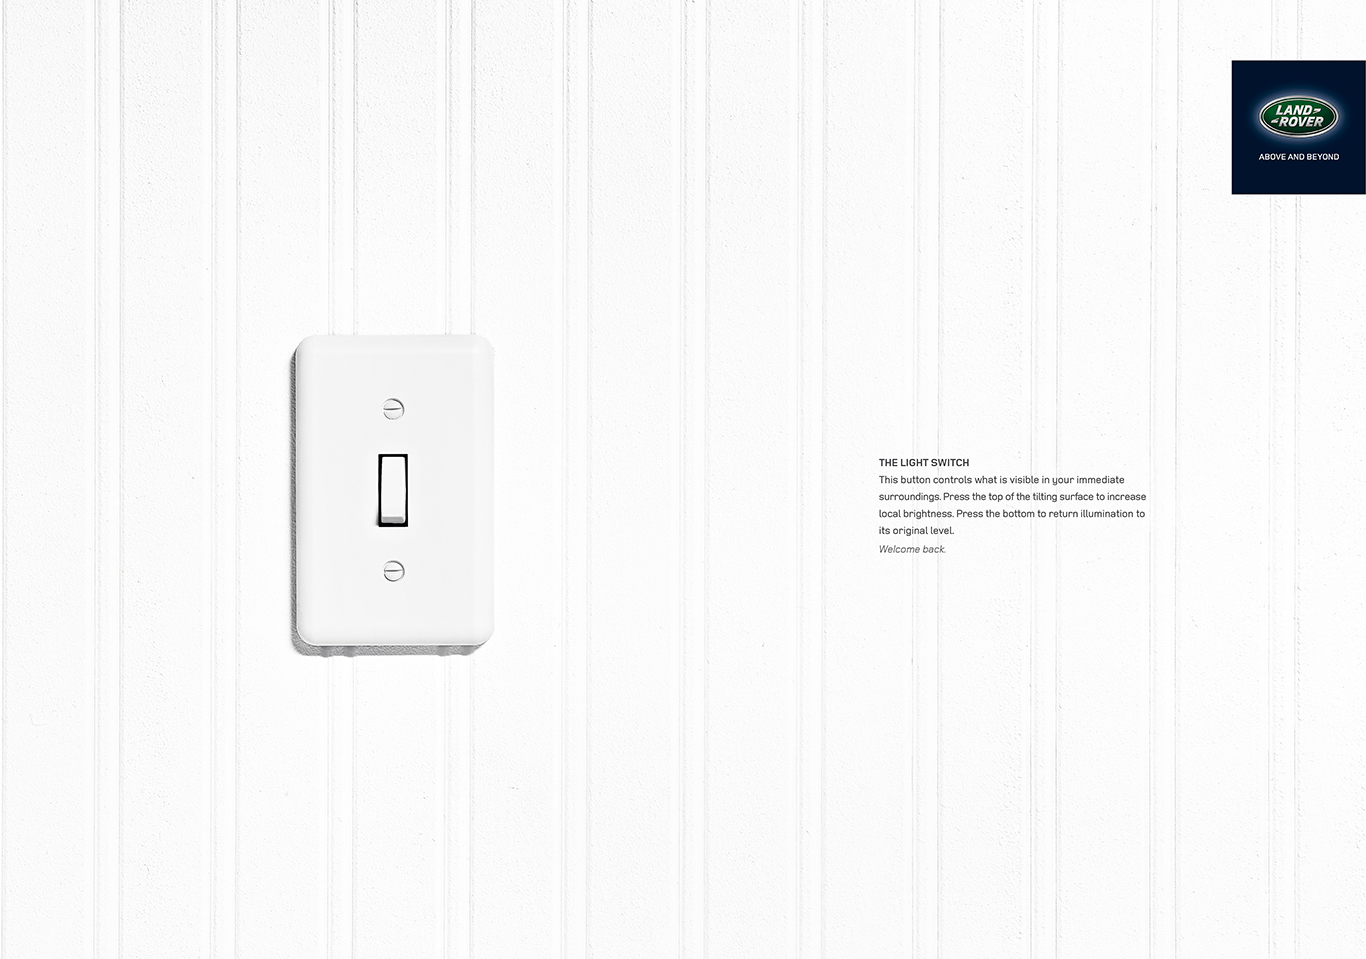 LR_LightSwitch_hi-copy.jpg